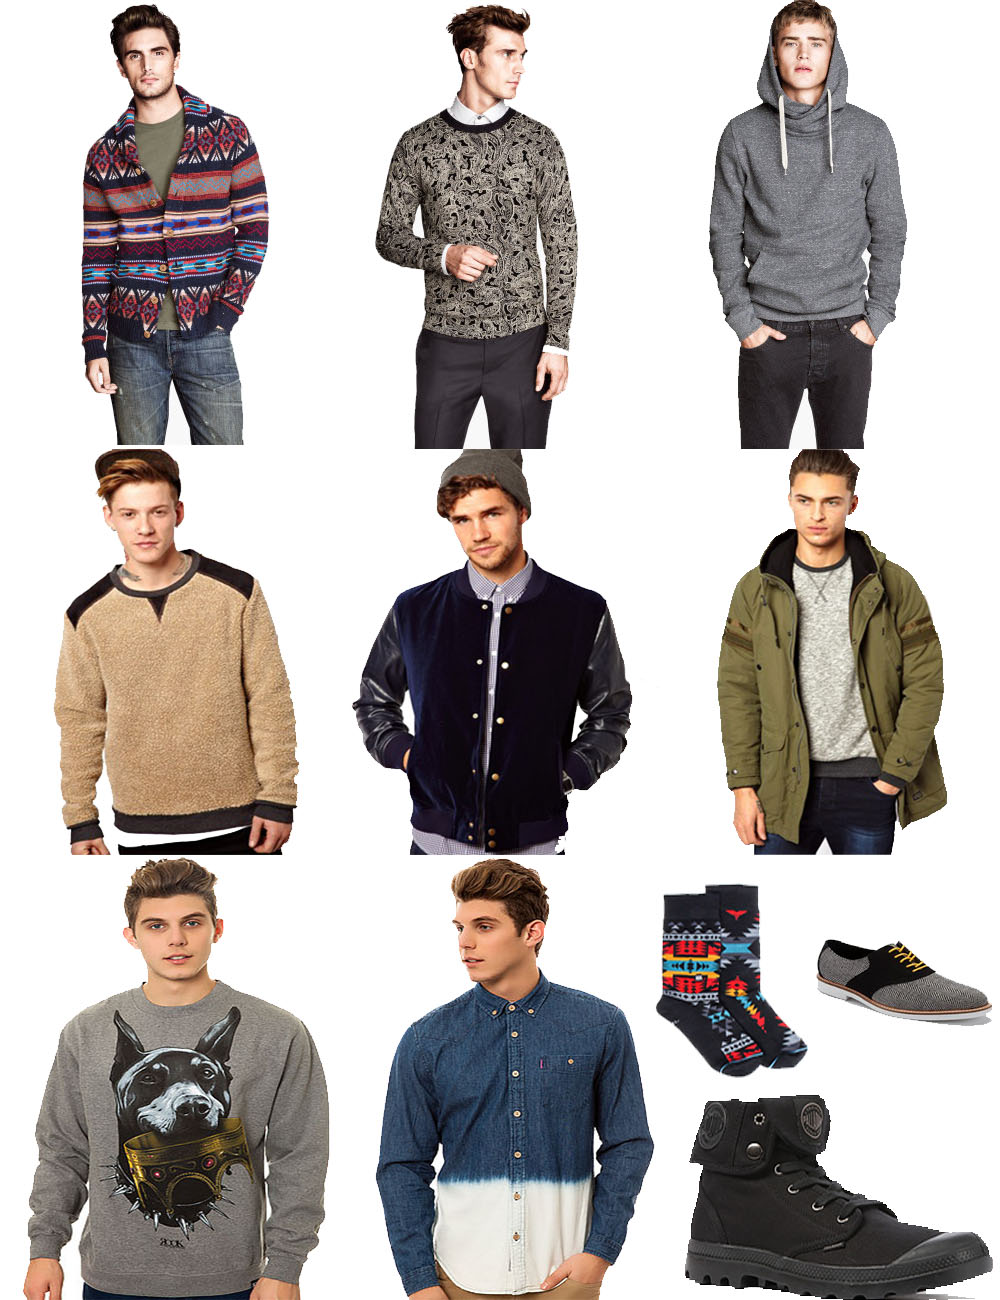 The Kentucky Gent's Cyber Monday Picks including selections from Karmaloop, Jackthreads, ASOS, and HM featuring items from Stance Socks, River Island, Hillsboro, Diesel and more.